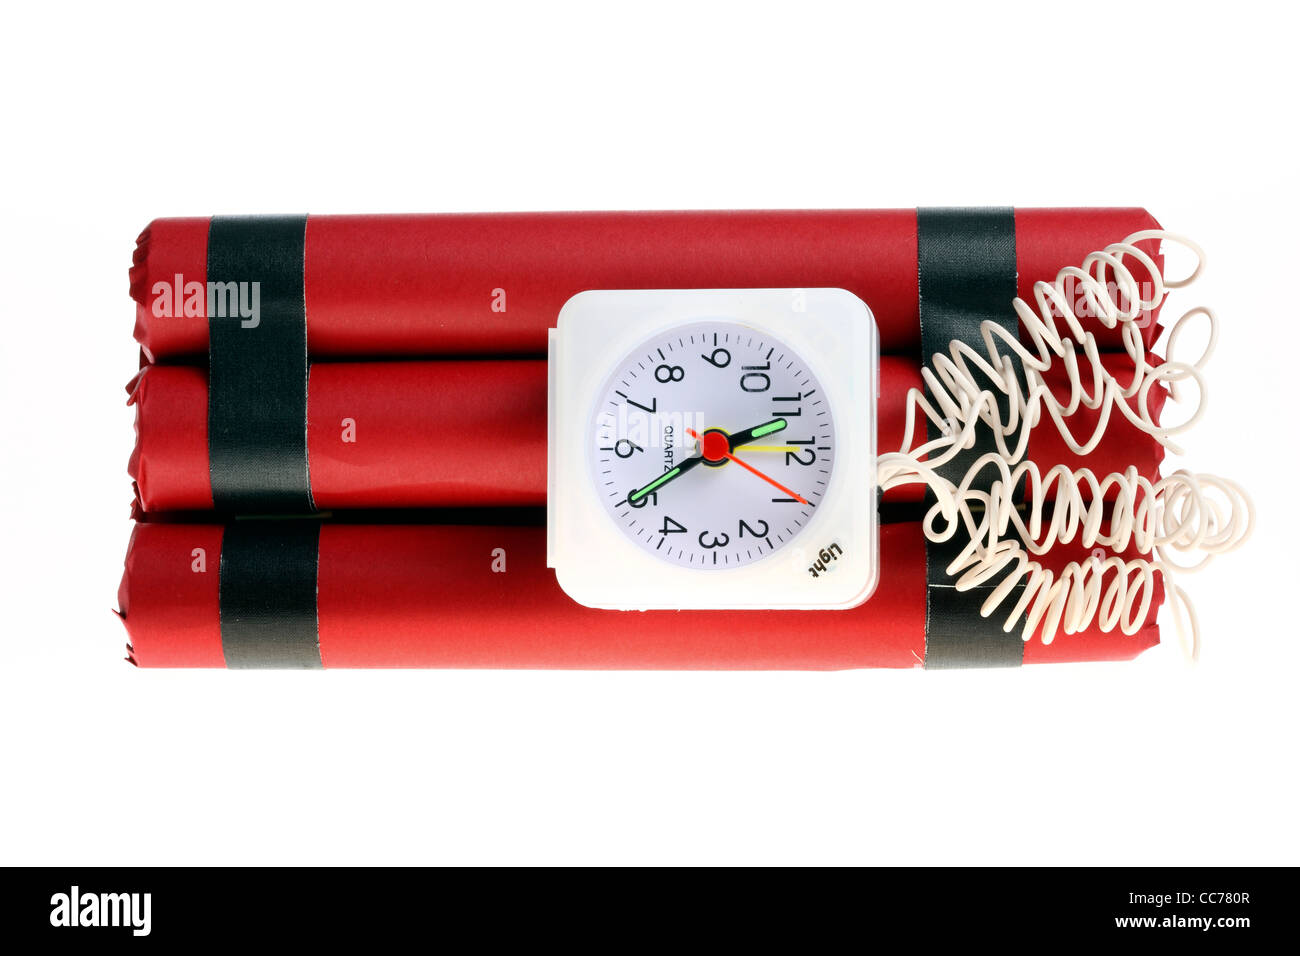 Time Bomb Stock Photos & Time Bomb Stock Images - Alamy